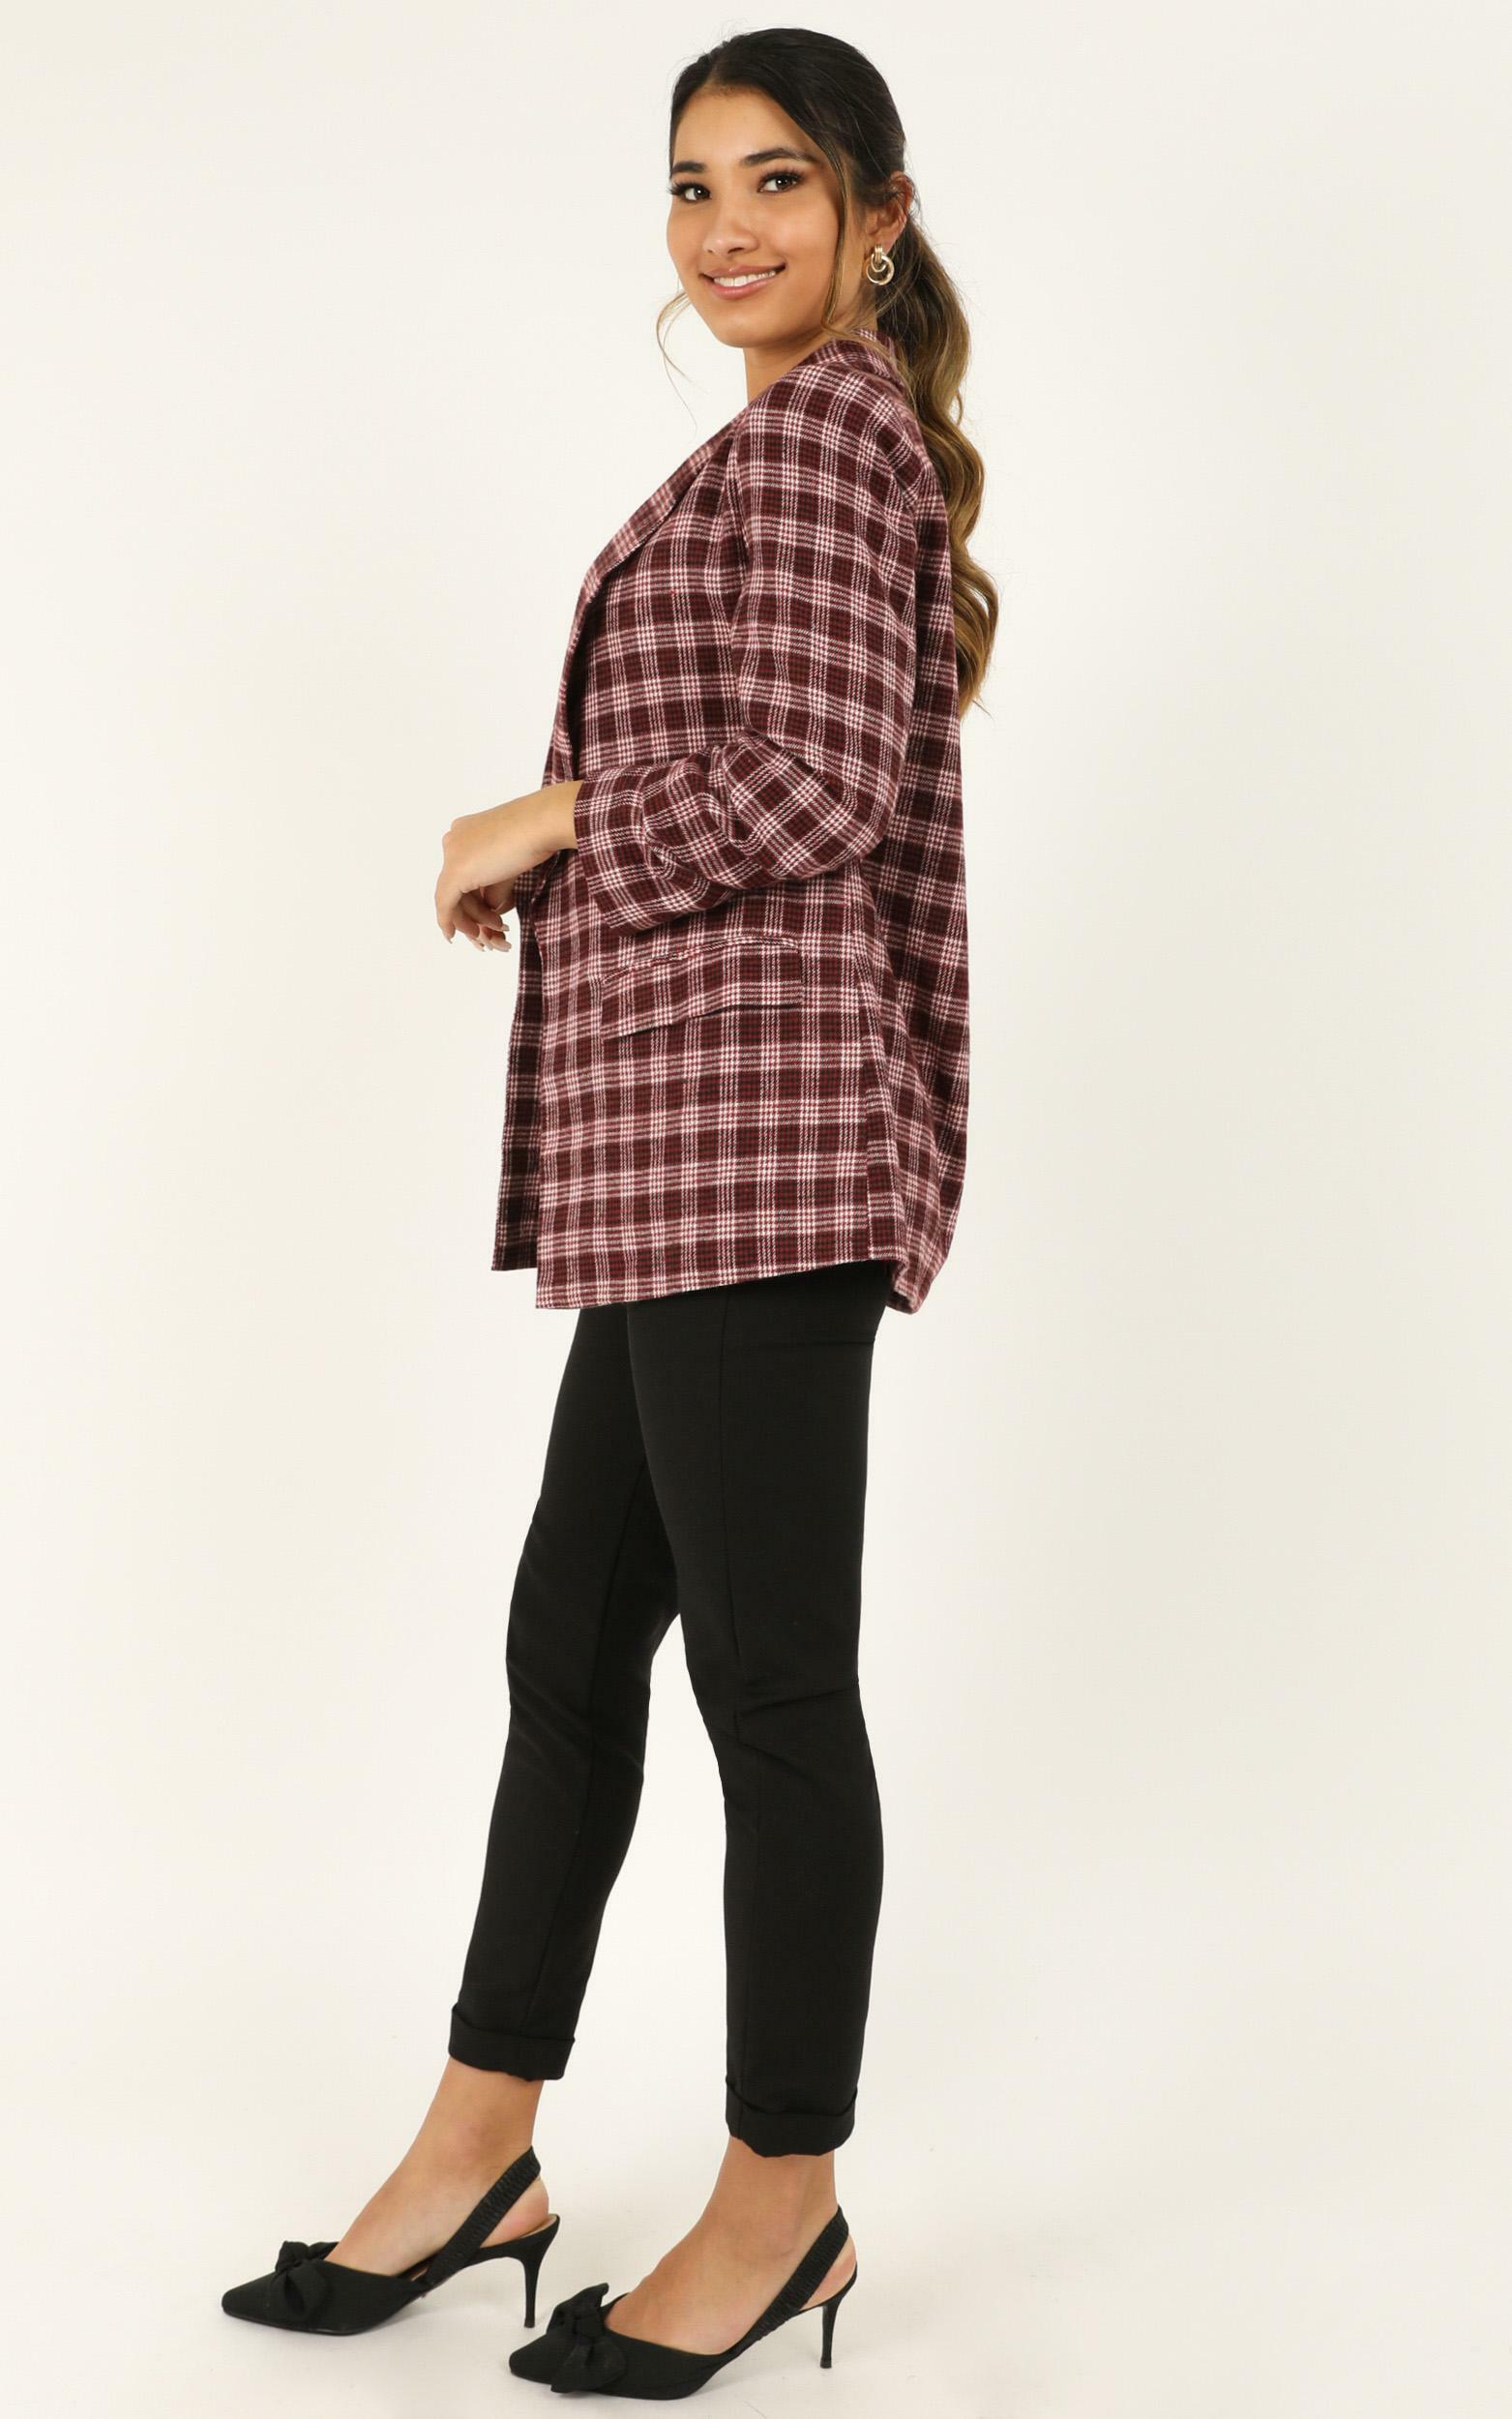 Late To Work Blazer In wine check - 18 (XXXL), Wine, hi-res image number null